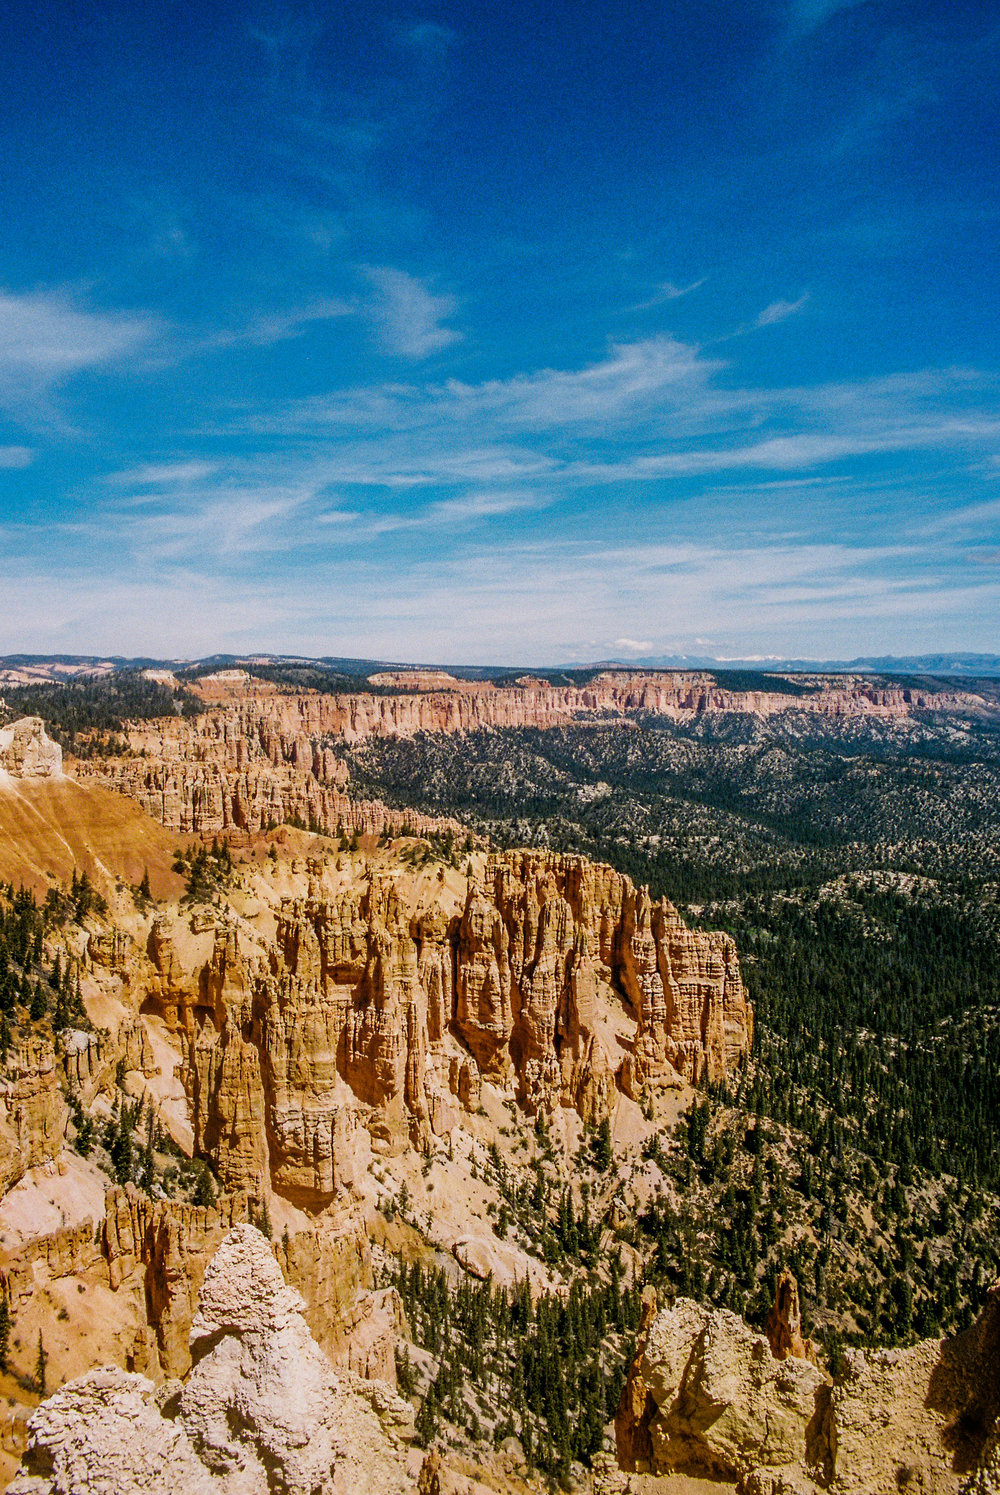 A 35mm film shot of the rock formations, called hoodoos, that Bryce Canyon is known for